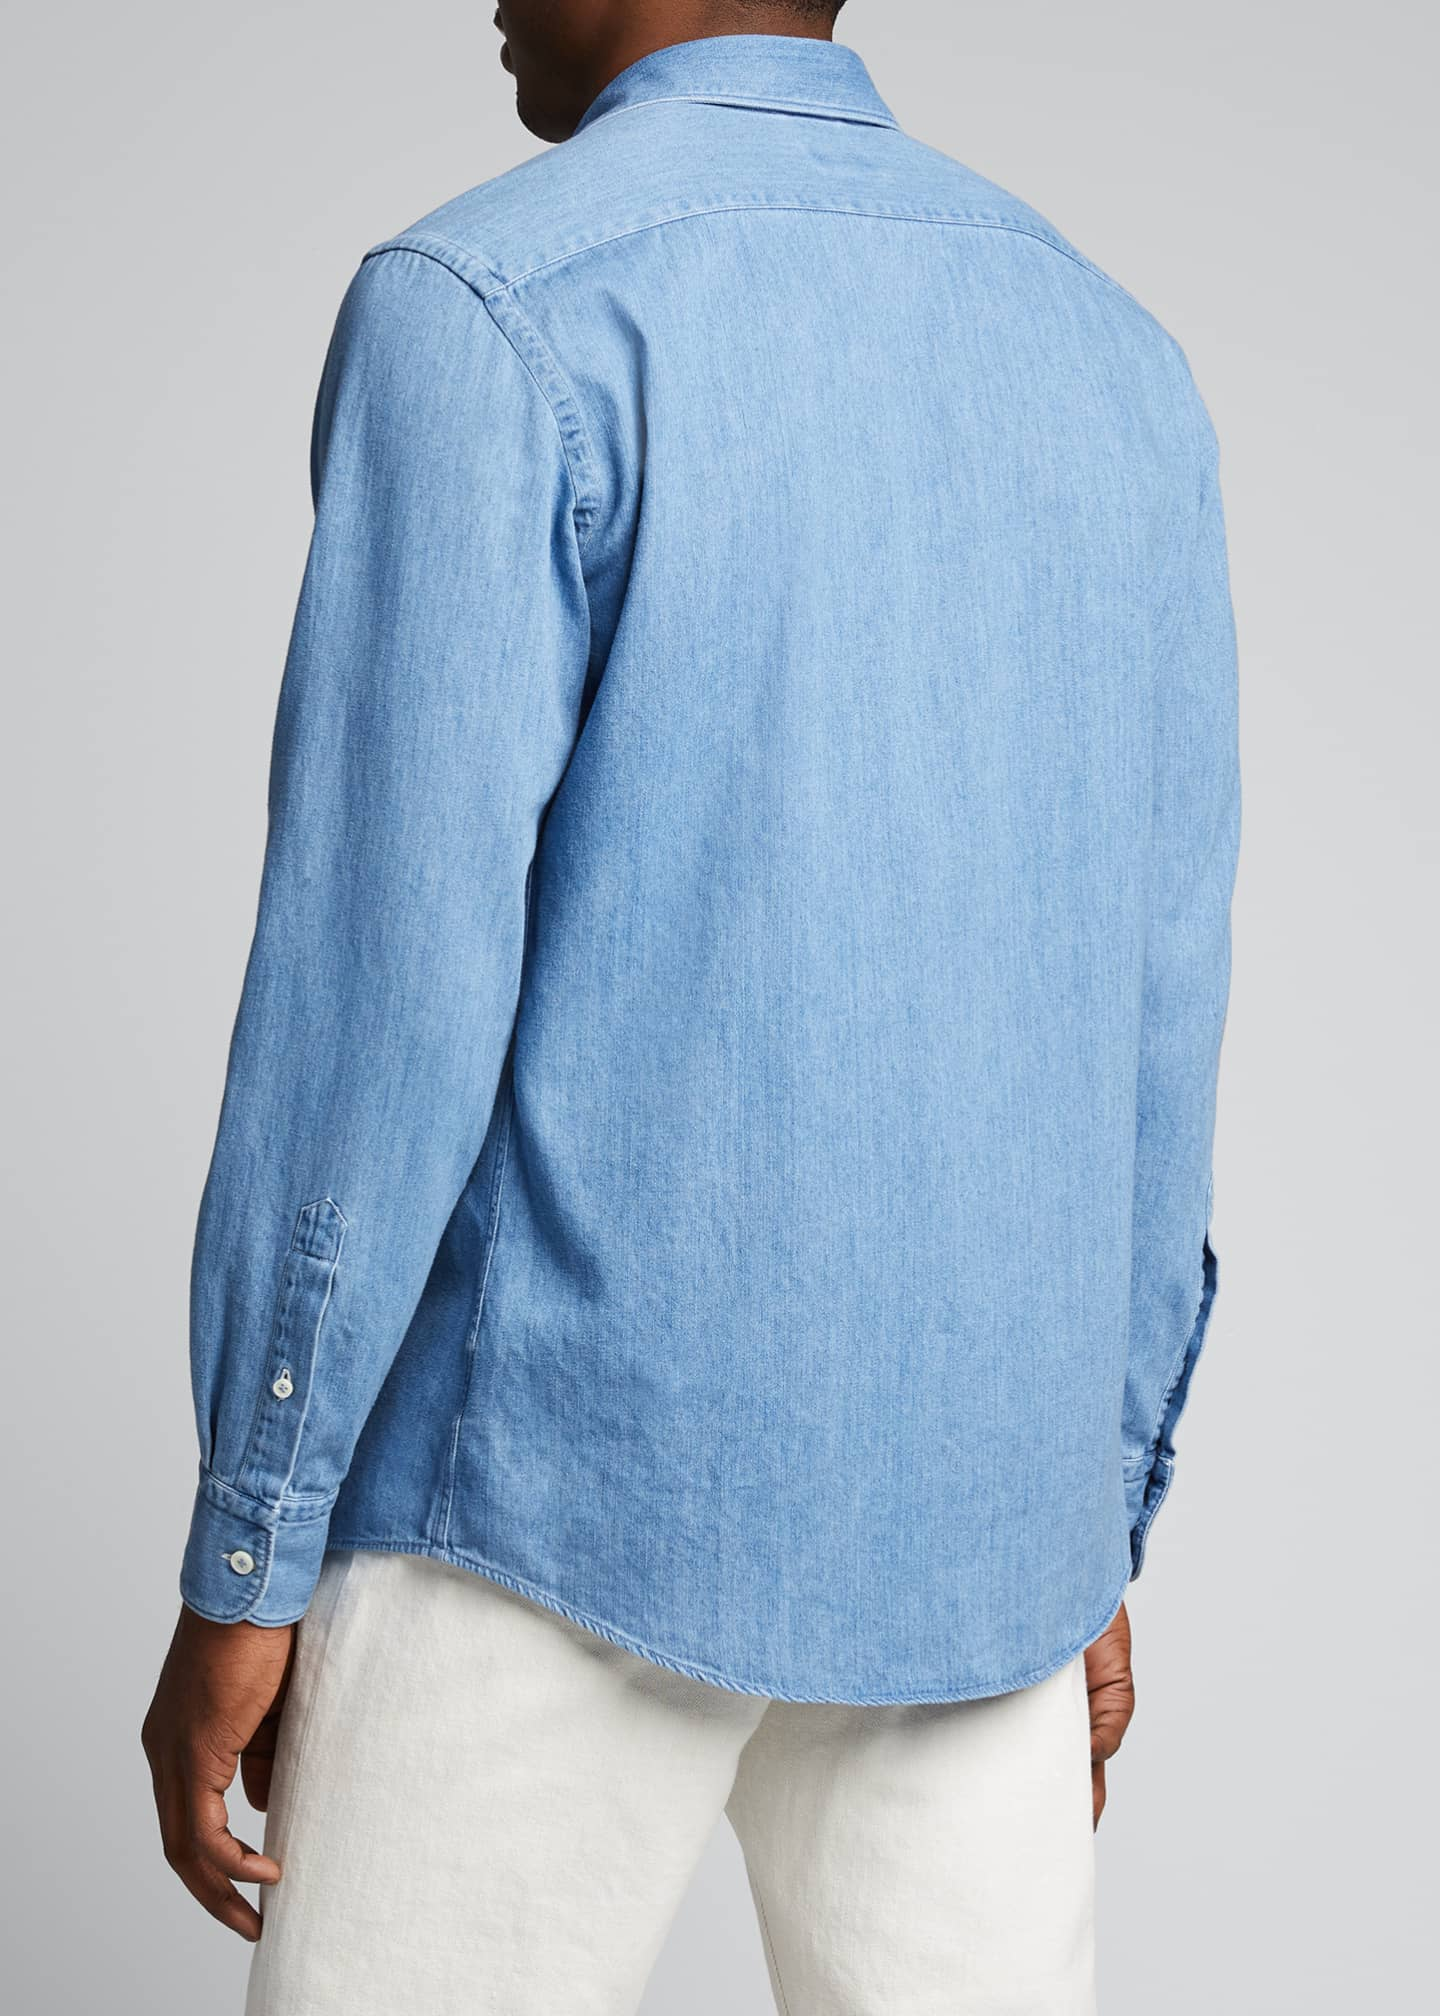 Image 2 of 5: Men's Light-Wash Denim Trim-Fit Sport Shirt